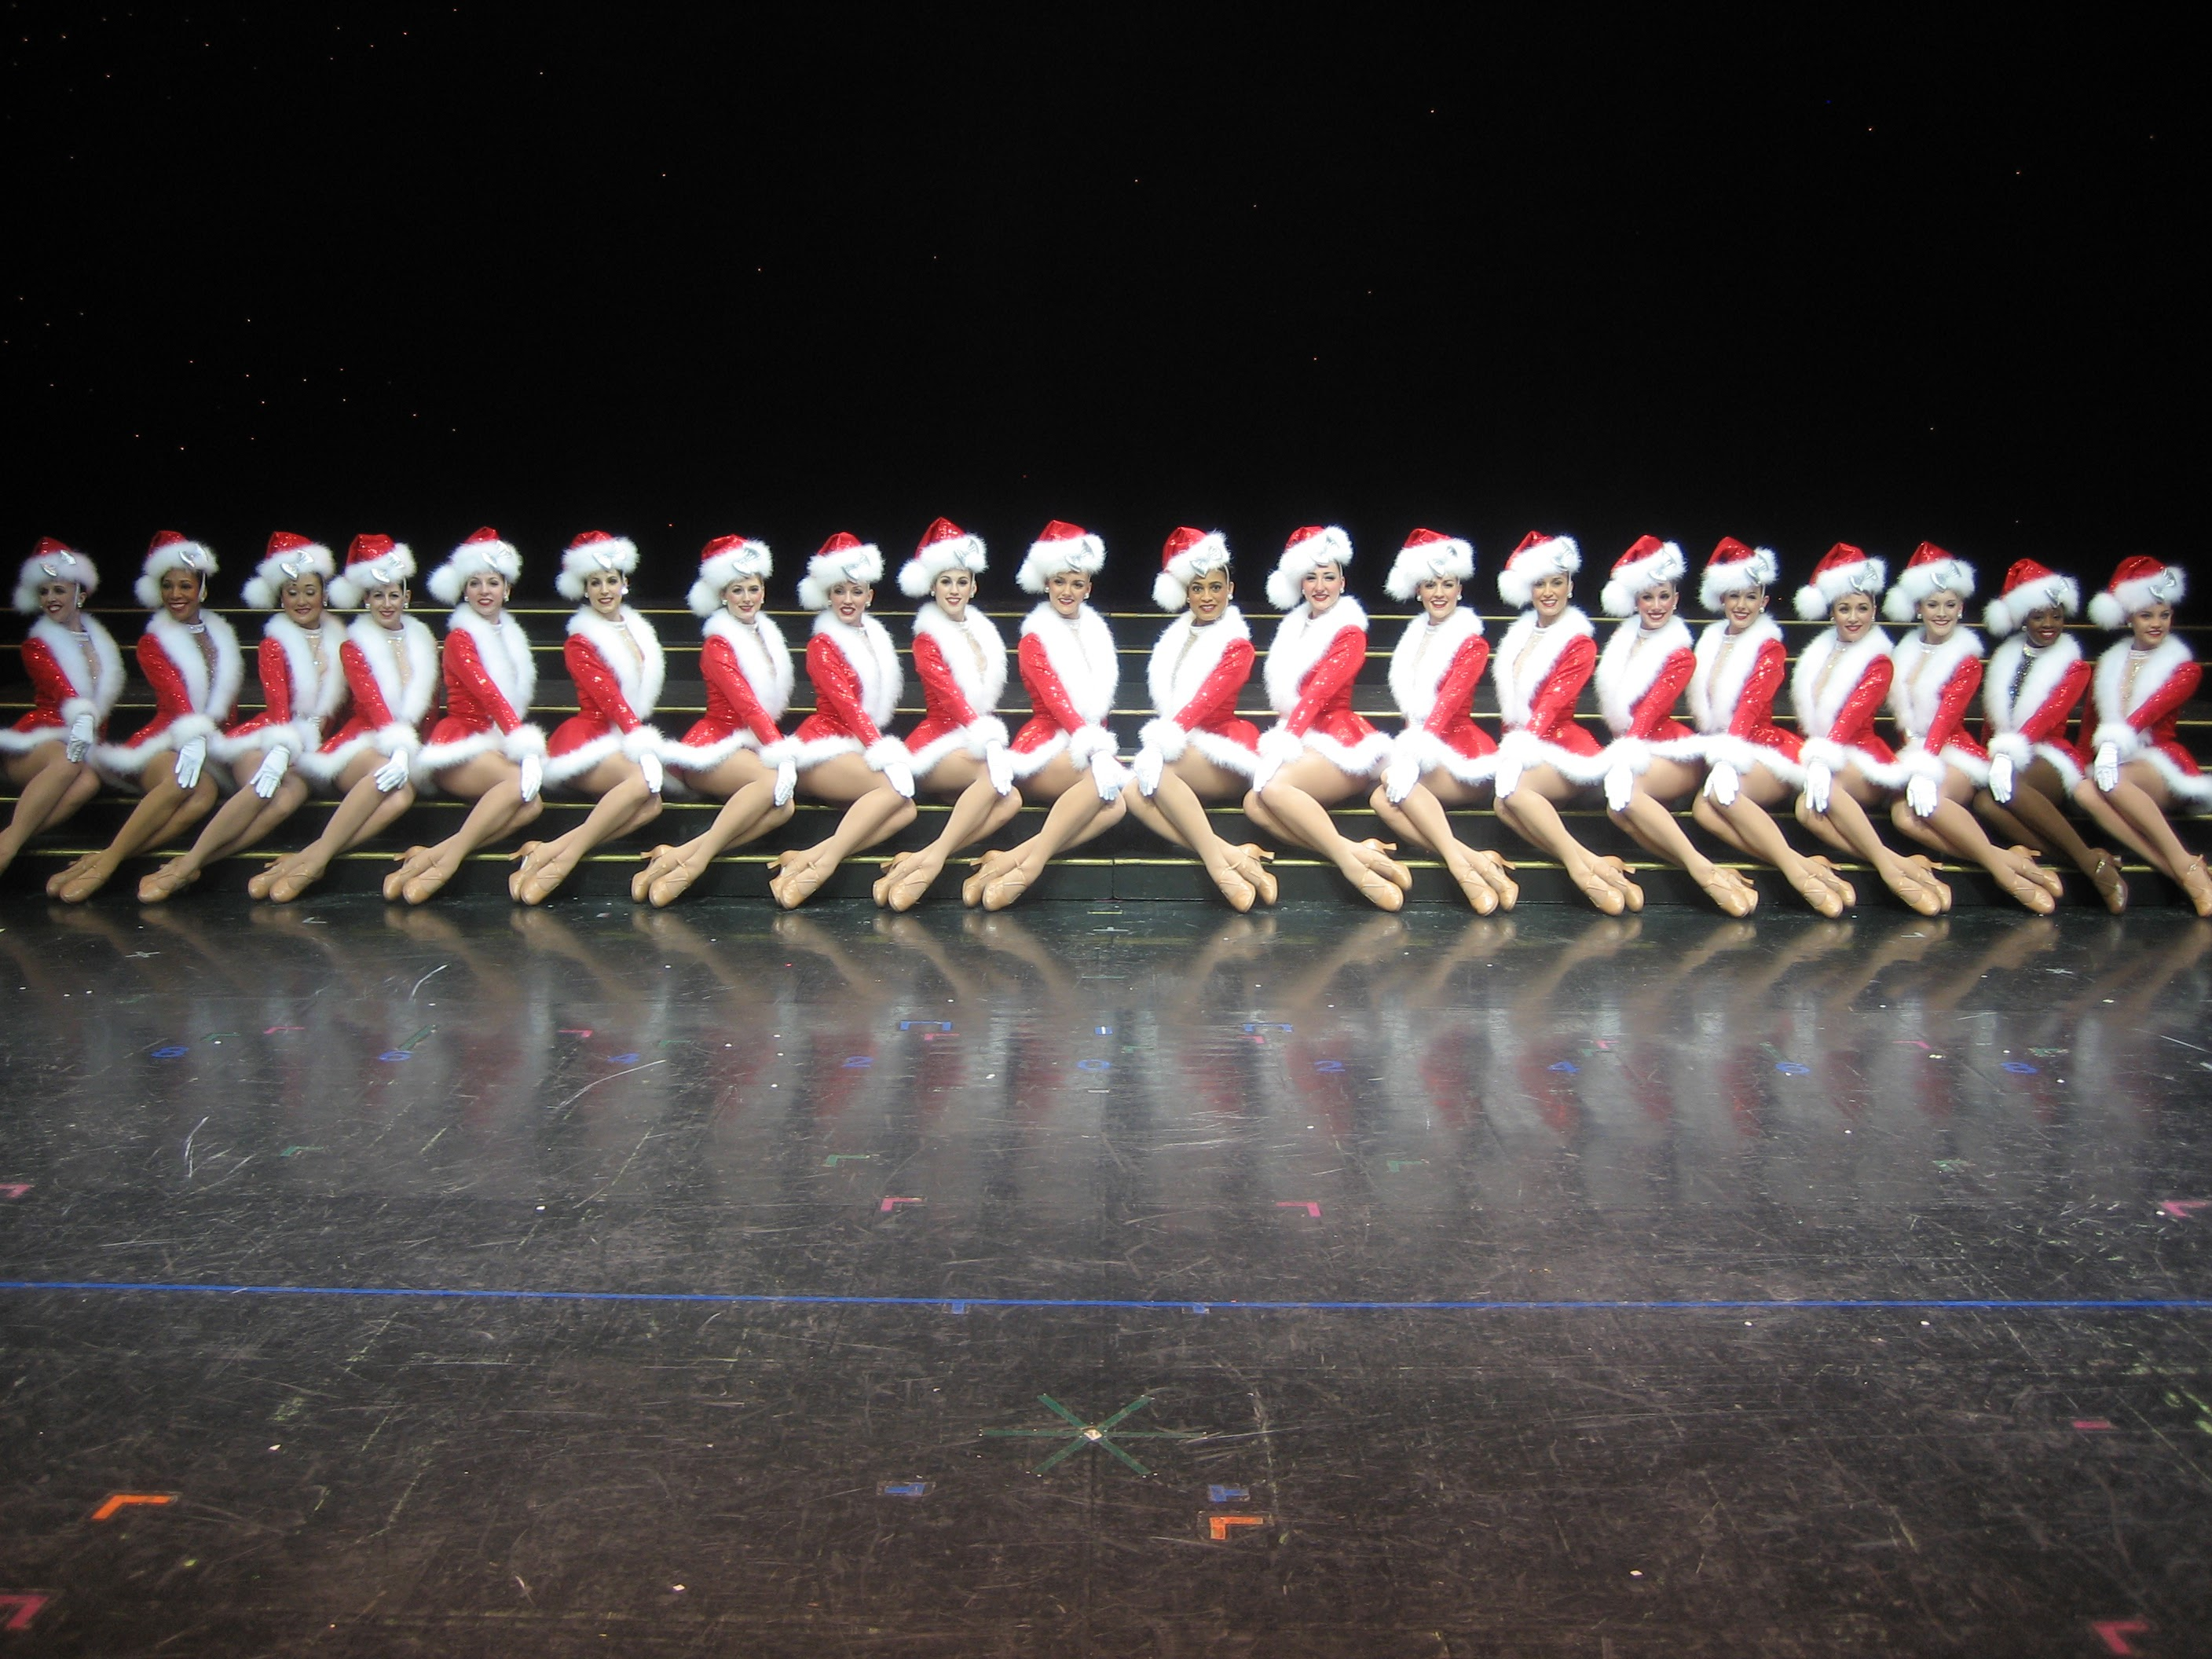 The Radio City Rockettes in 2009 (6th from the right)